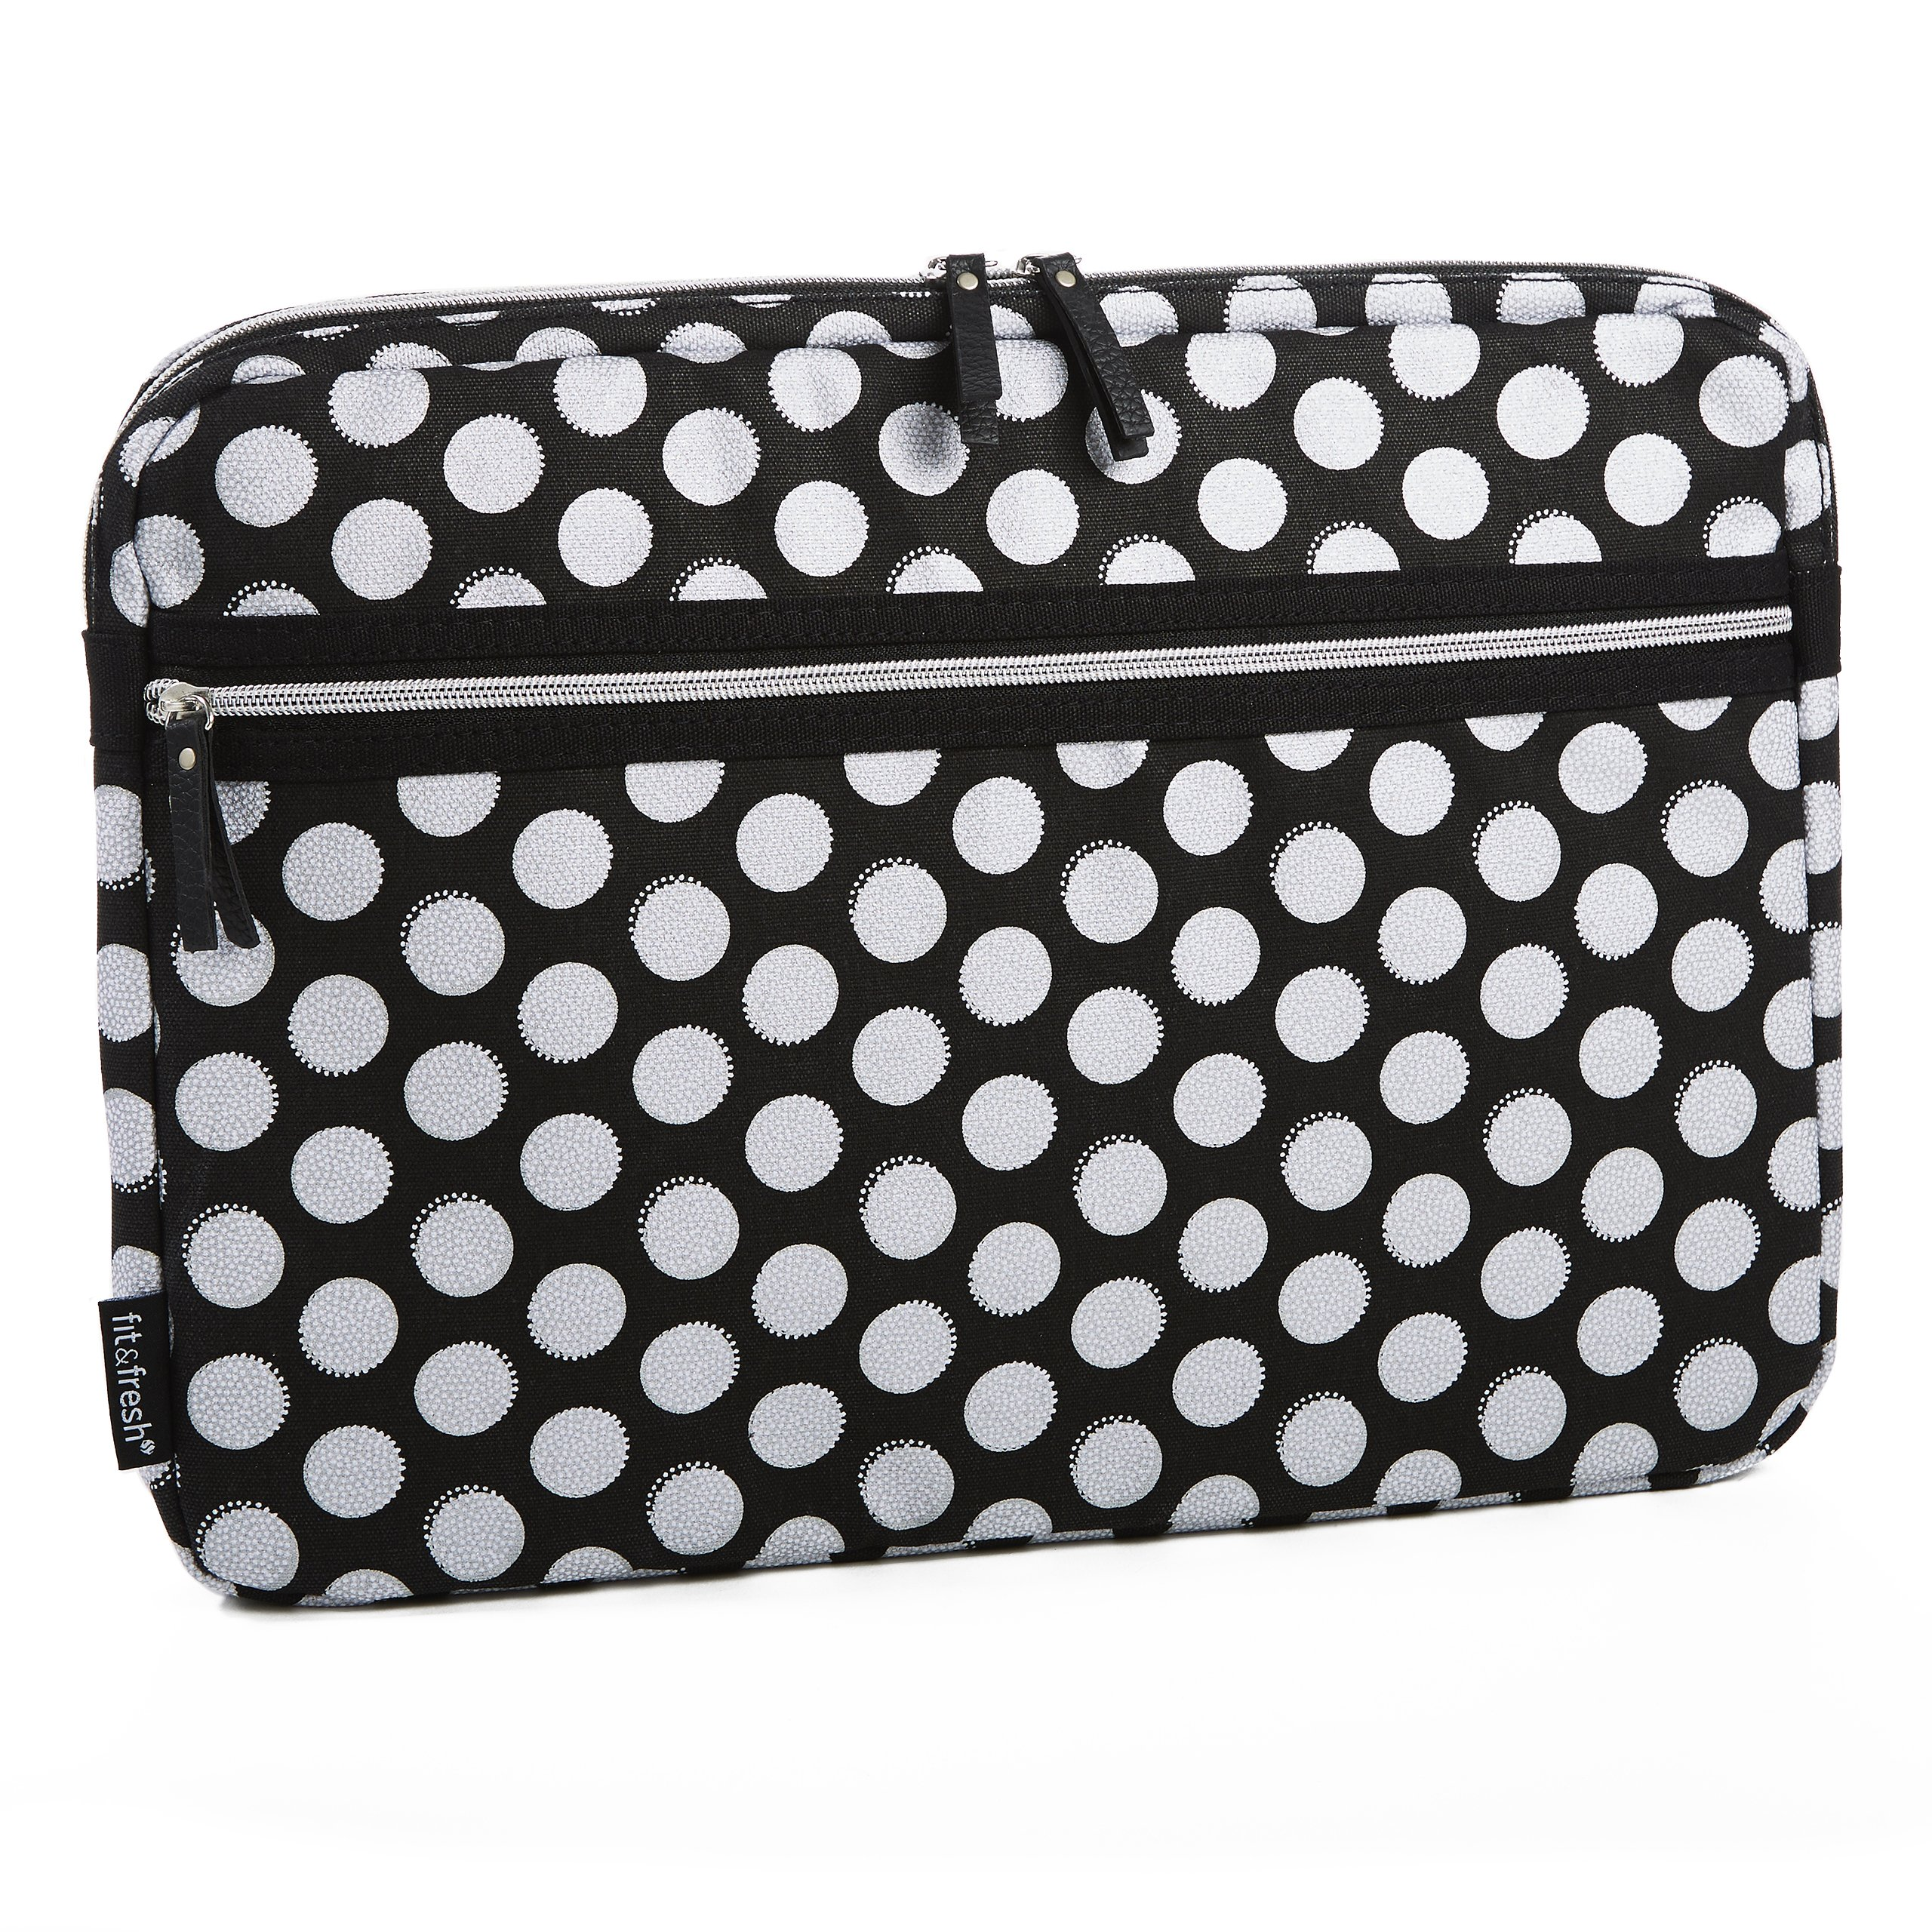 Fit & Fresh Protective Laptop Sleeve with Zippered Storage Pocket, Laptop Bag fits Apple/Microsoft/Acer/Samsung/Google/Lenovo with up to 15.6'' Displays, Black Double Dot